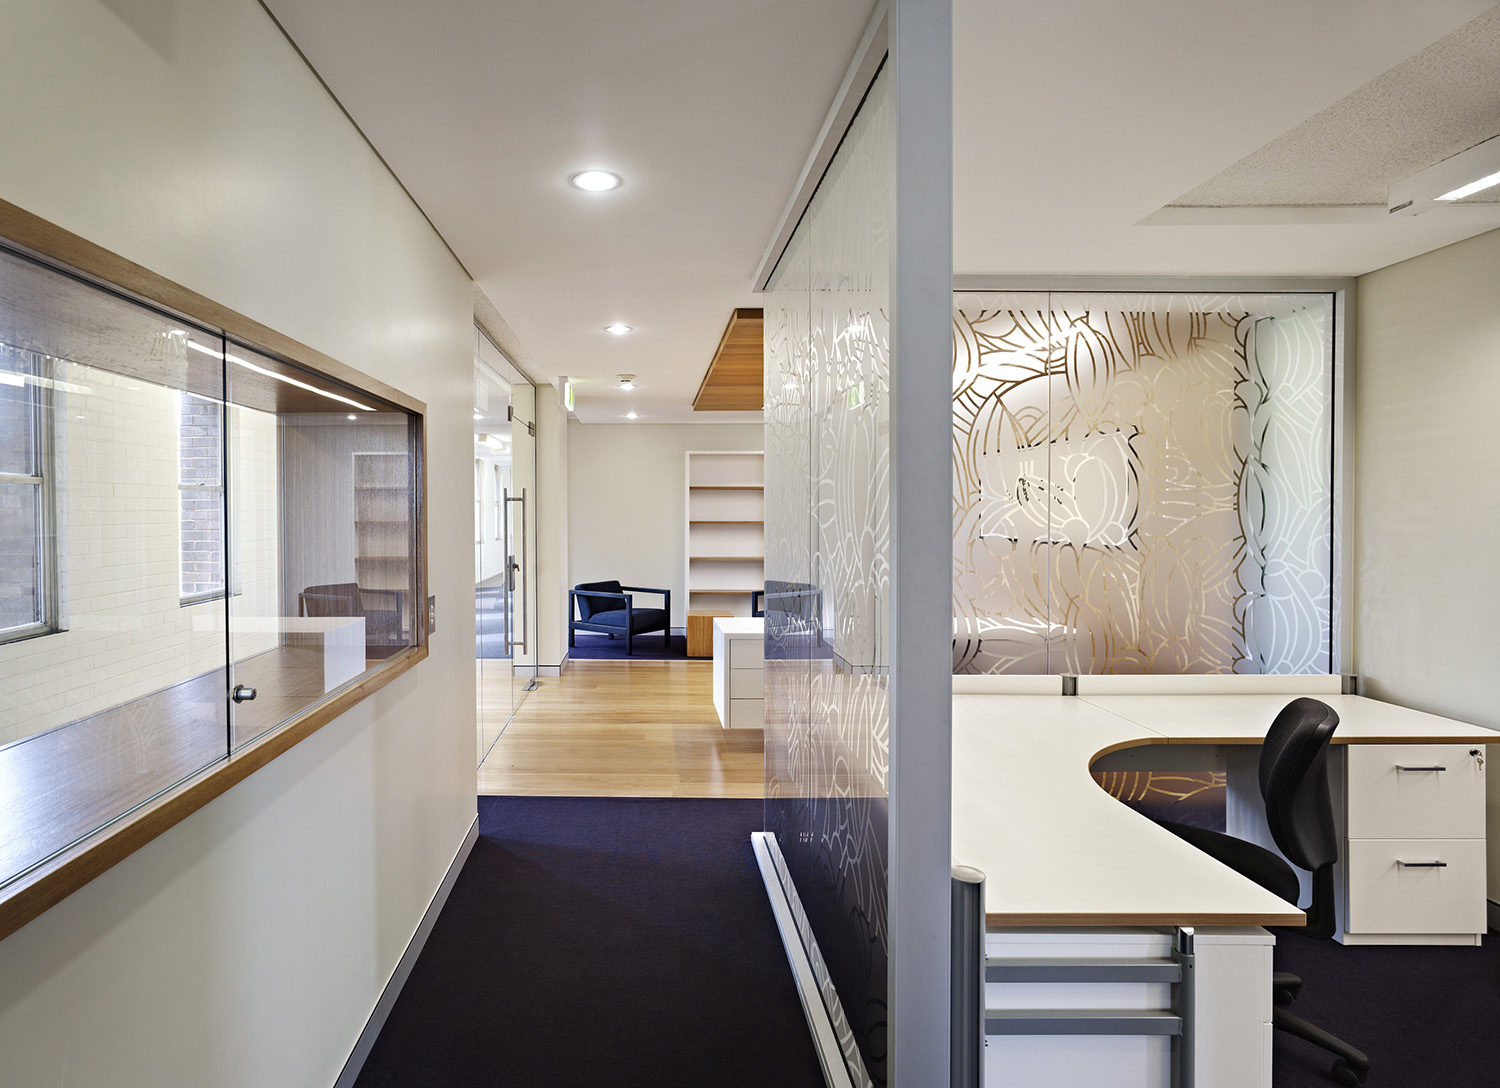 UNSW Confucius Institute Workplace Office and Hallway Interor Design – Gardner Wetherill GW 3